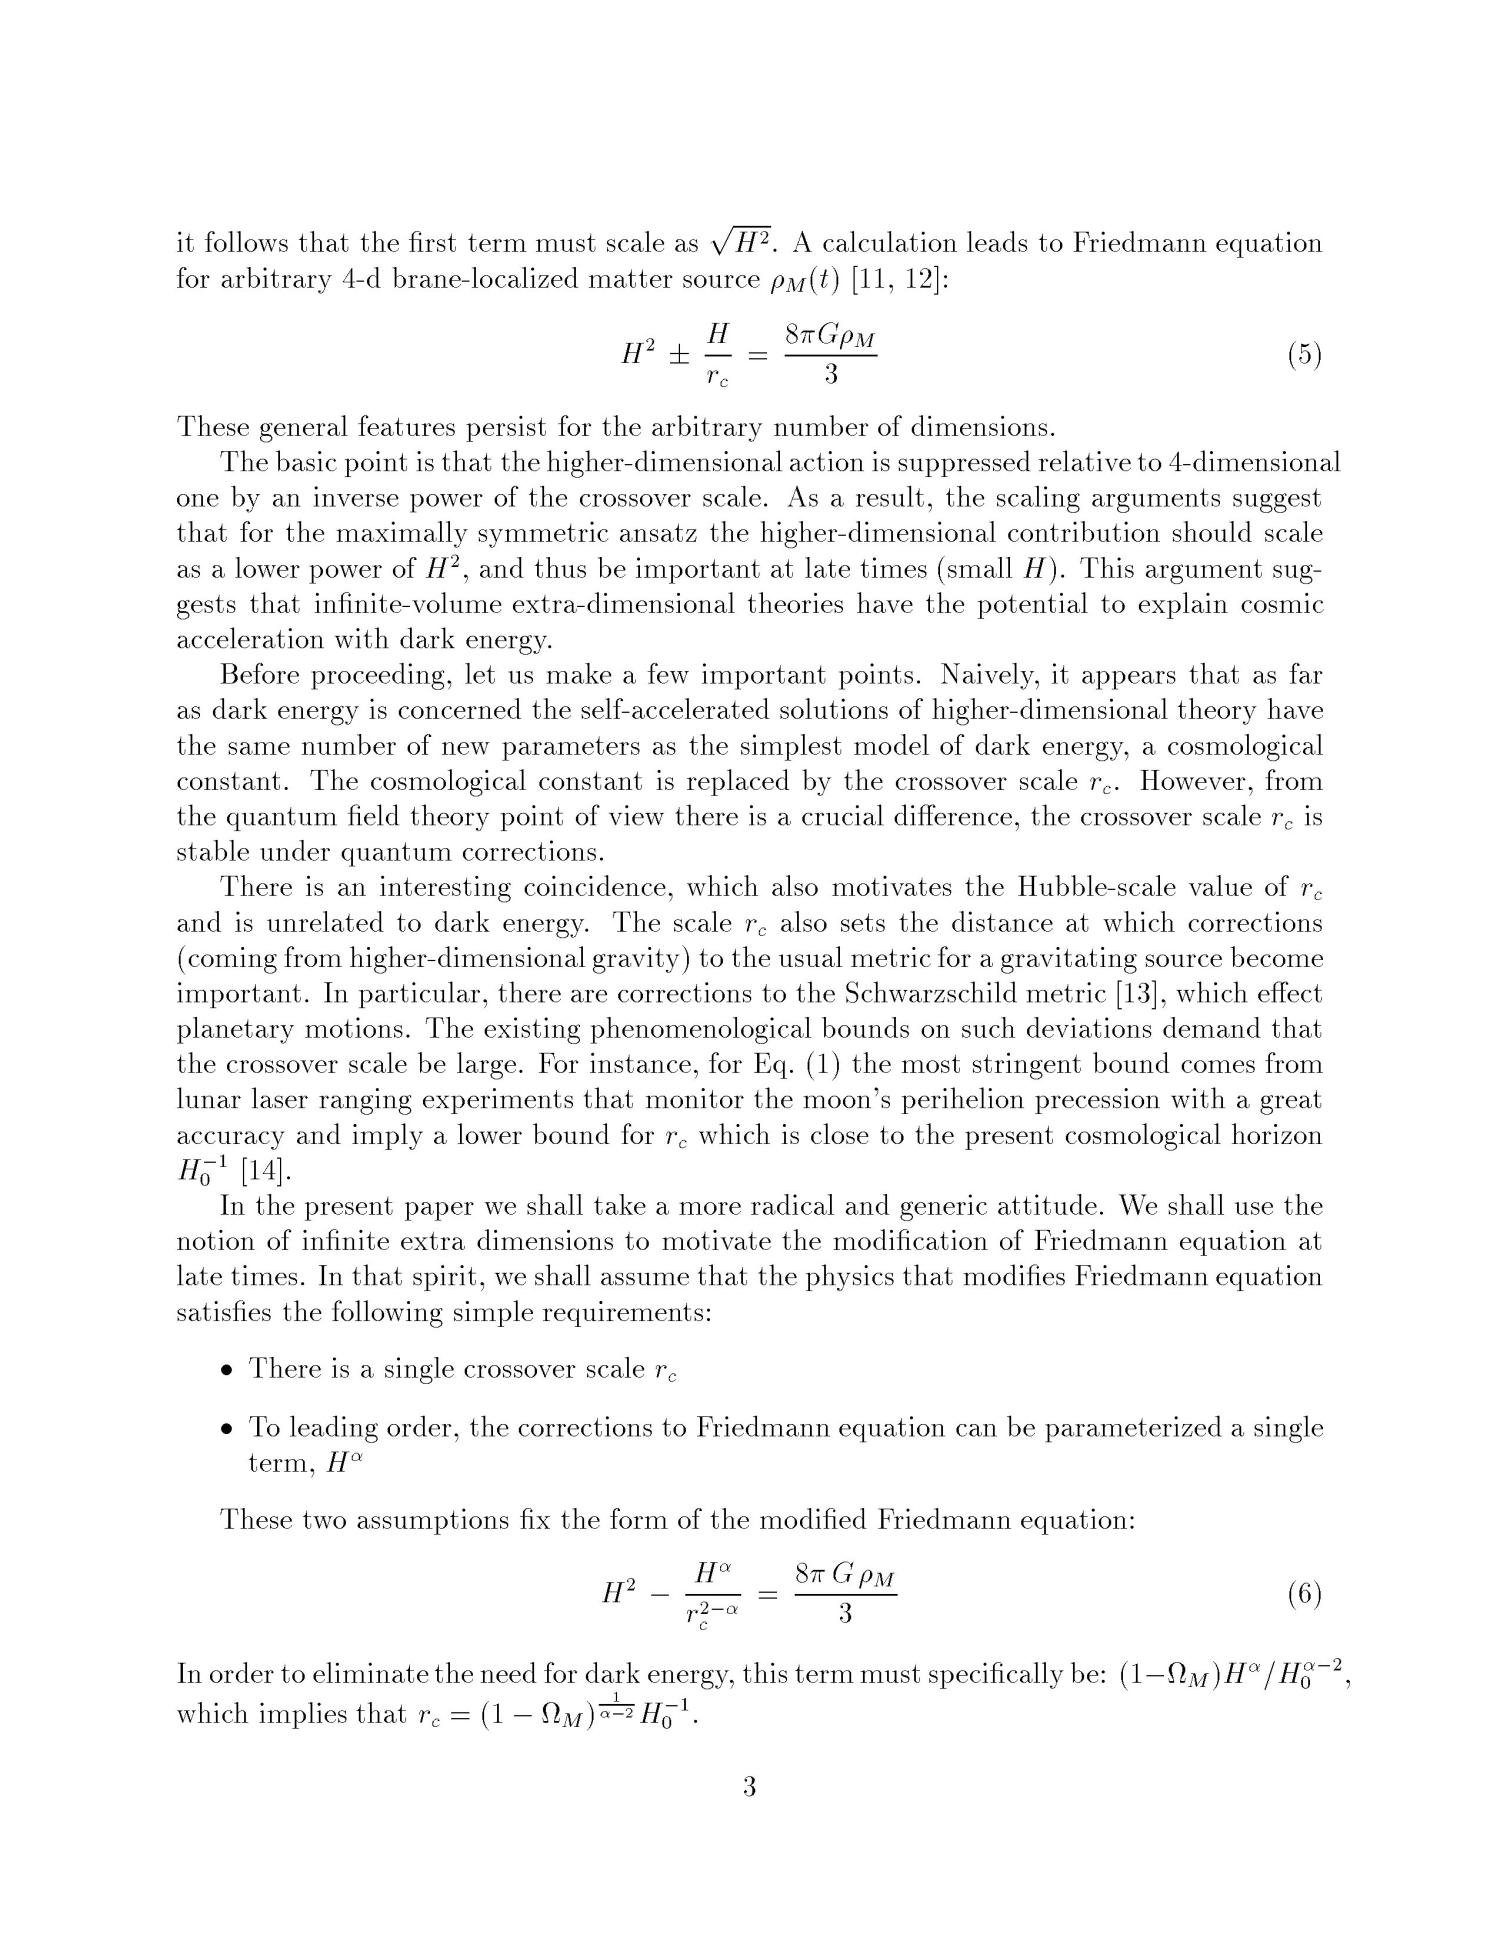 Dark energy as a modification of the Friedmann equation                                                                                                      [Sequence #]: 4 of 12